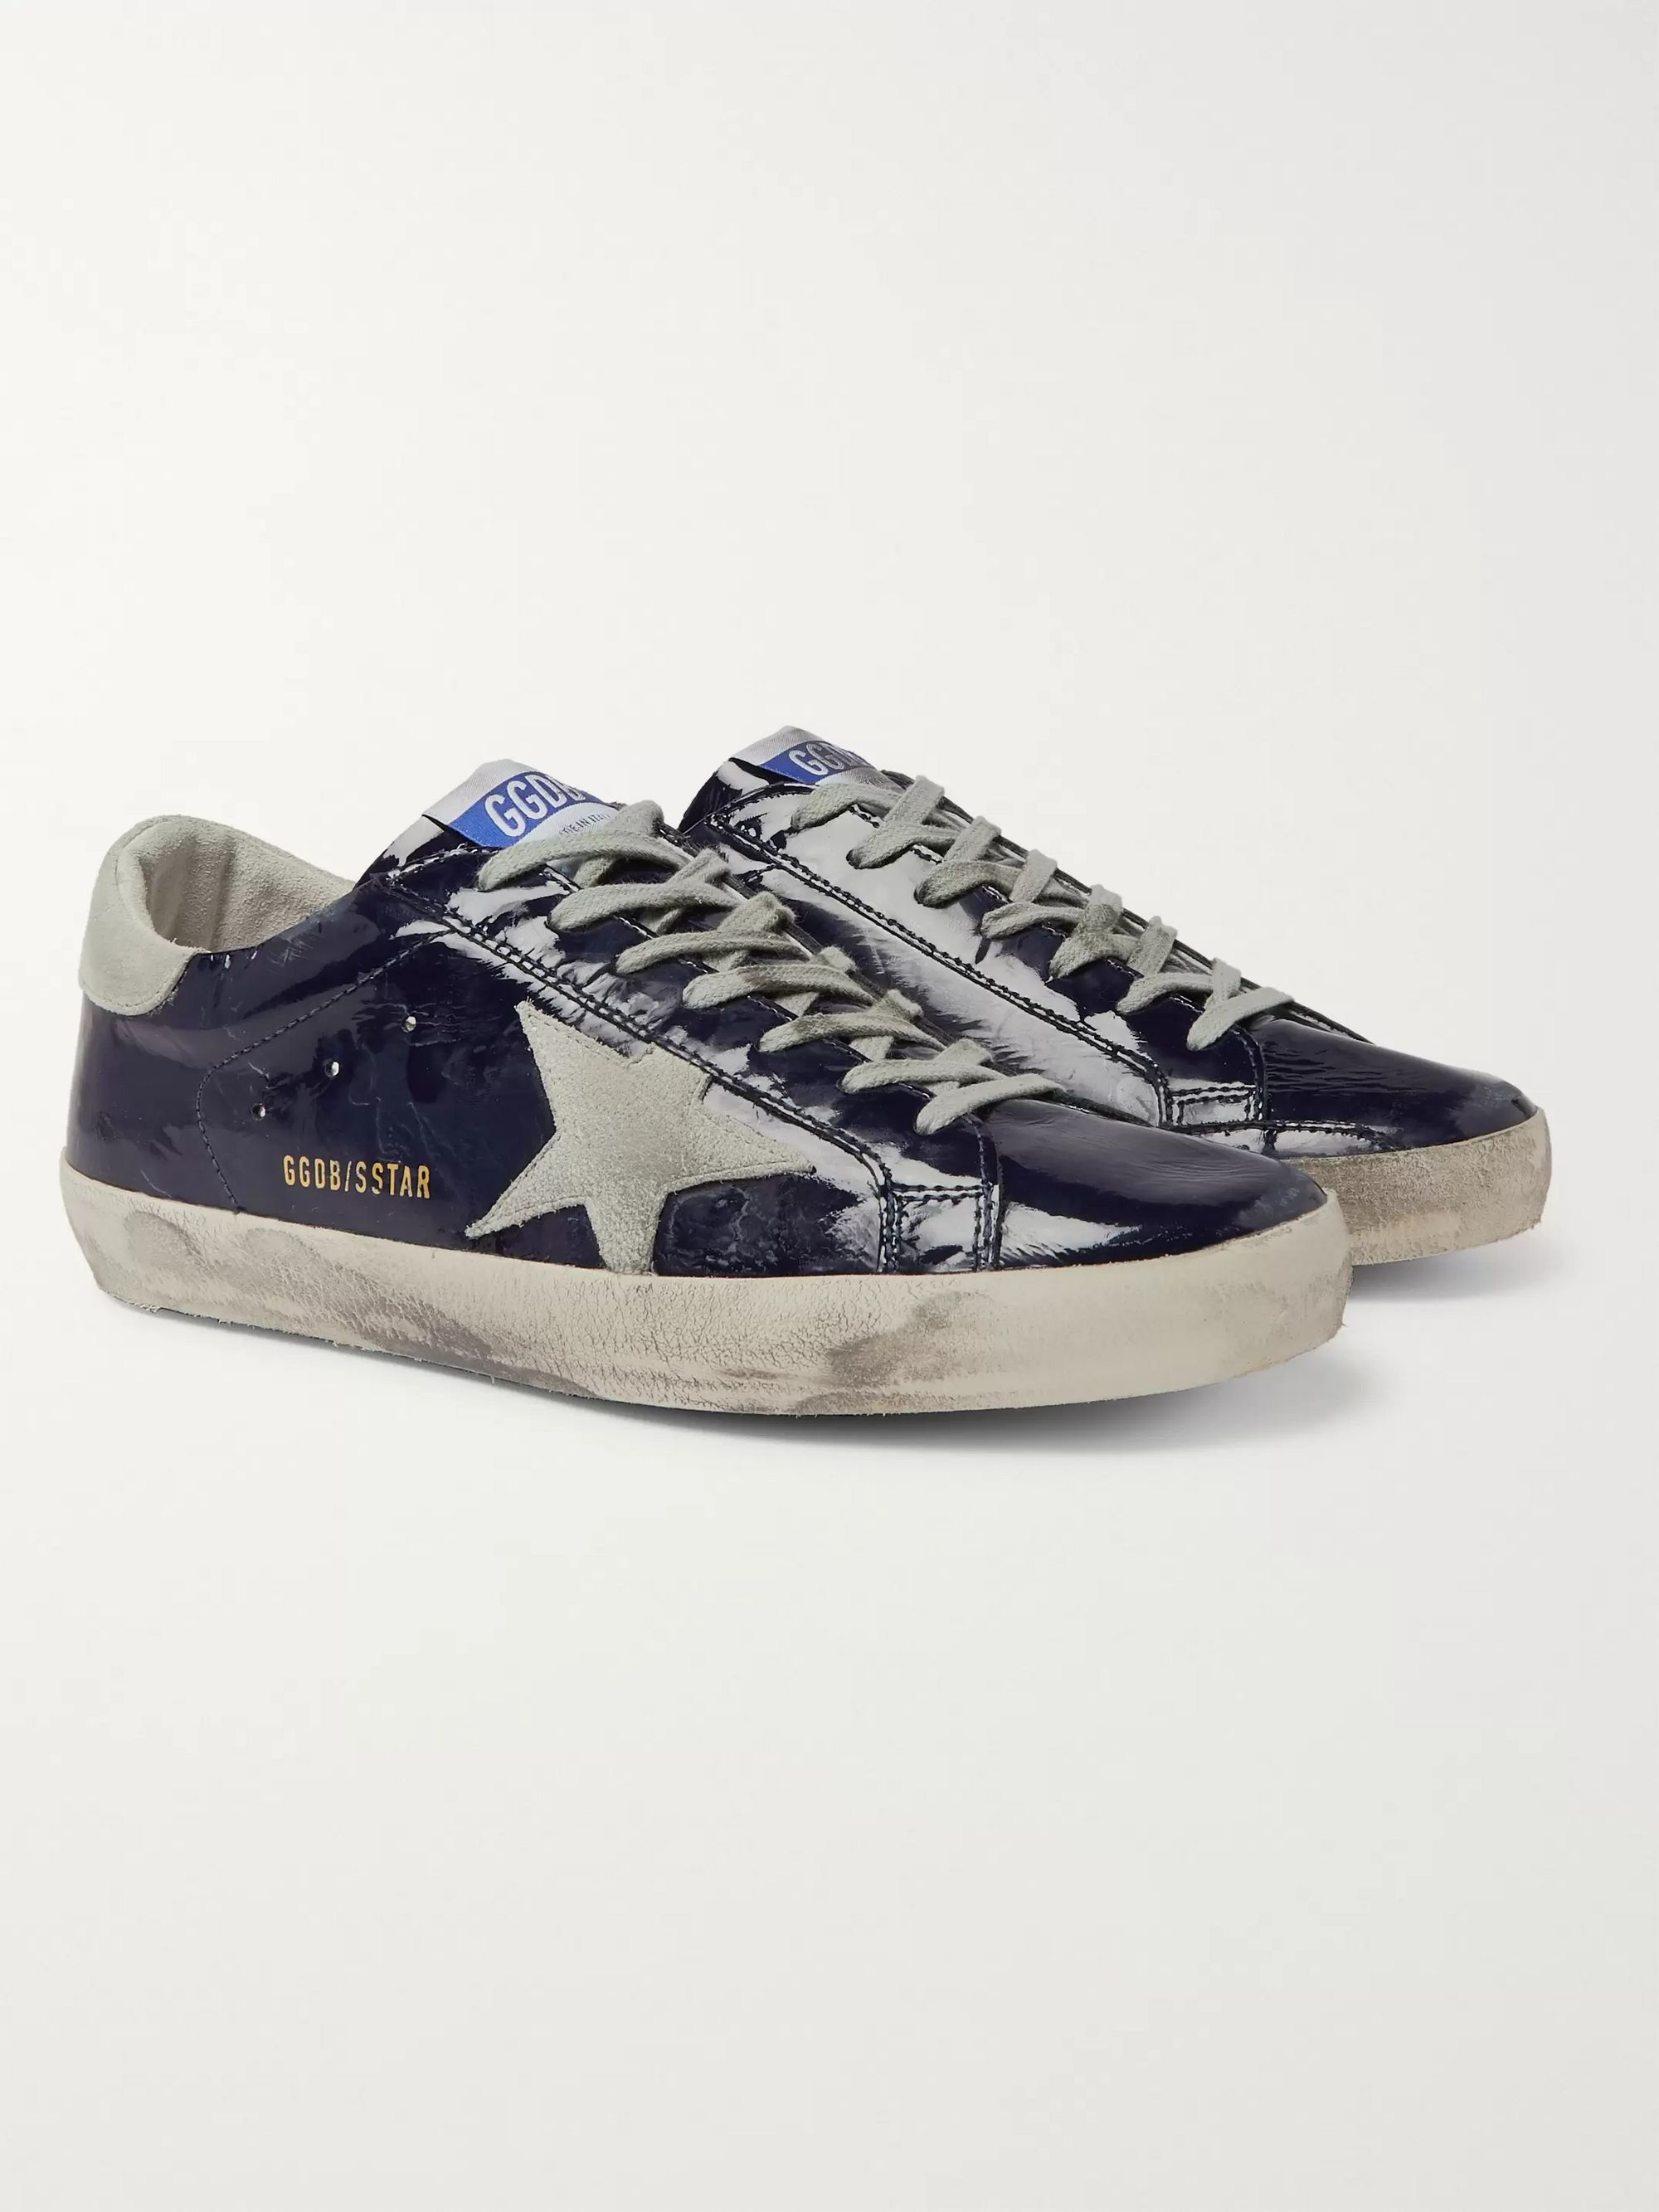 Golden Goose Superstar Sneakers Review   Sneakers fashion